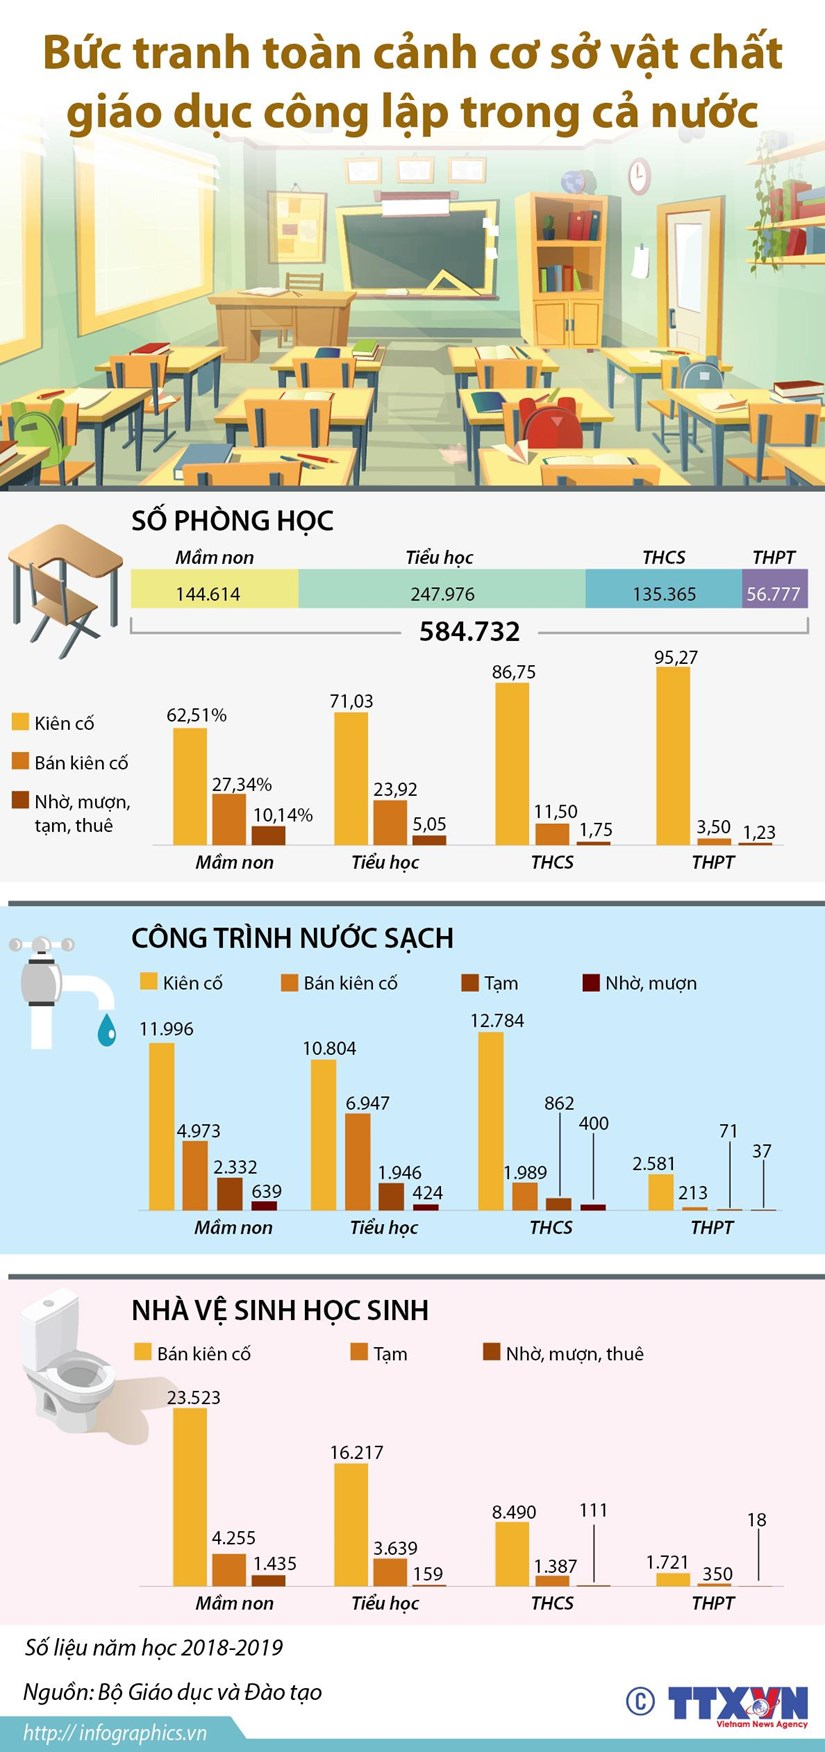 infographics toan canh co so vat chat giao duc cong lap tren ca nuoc